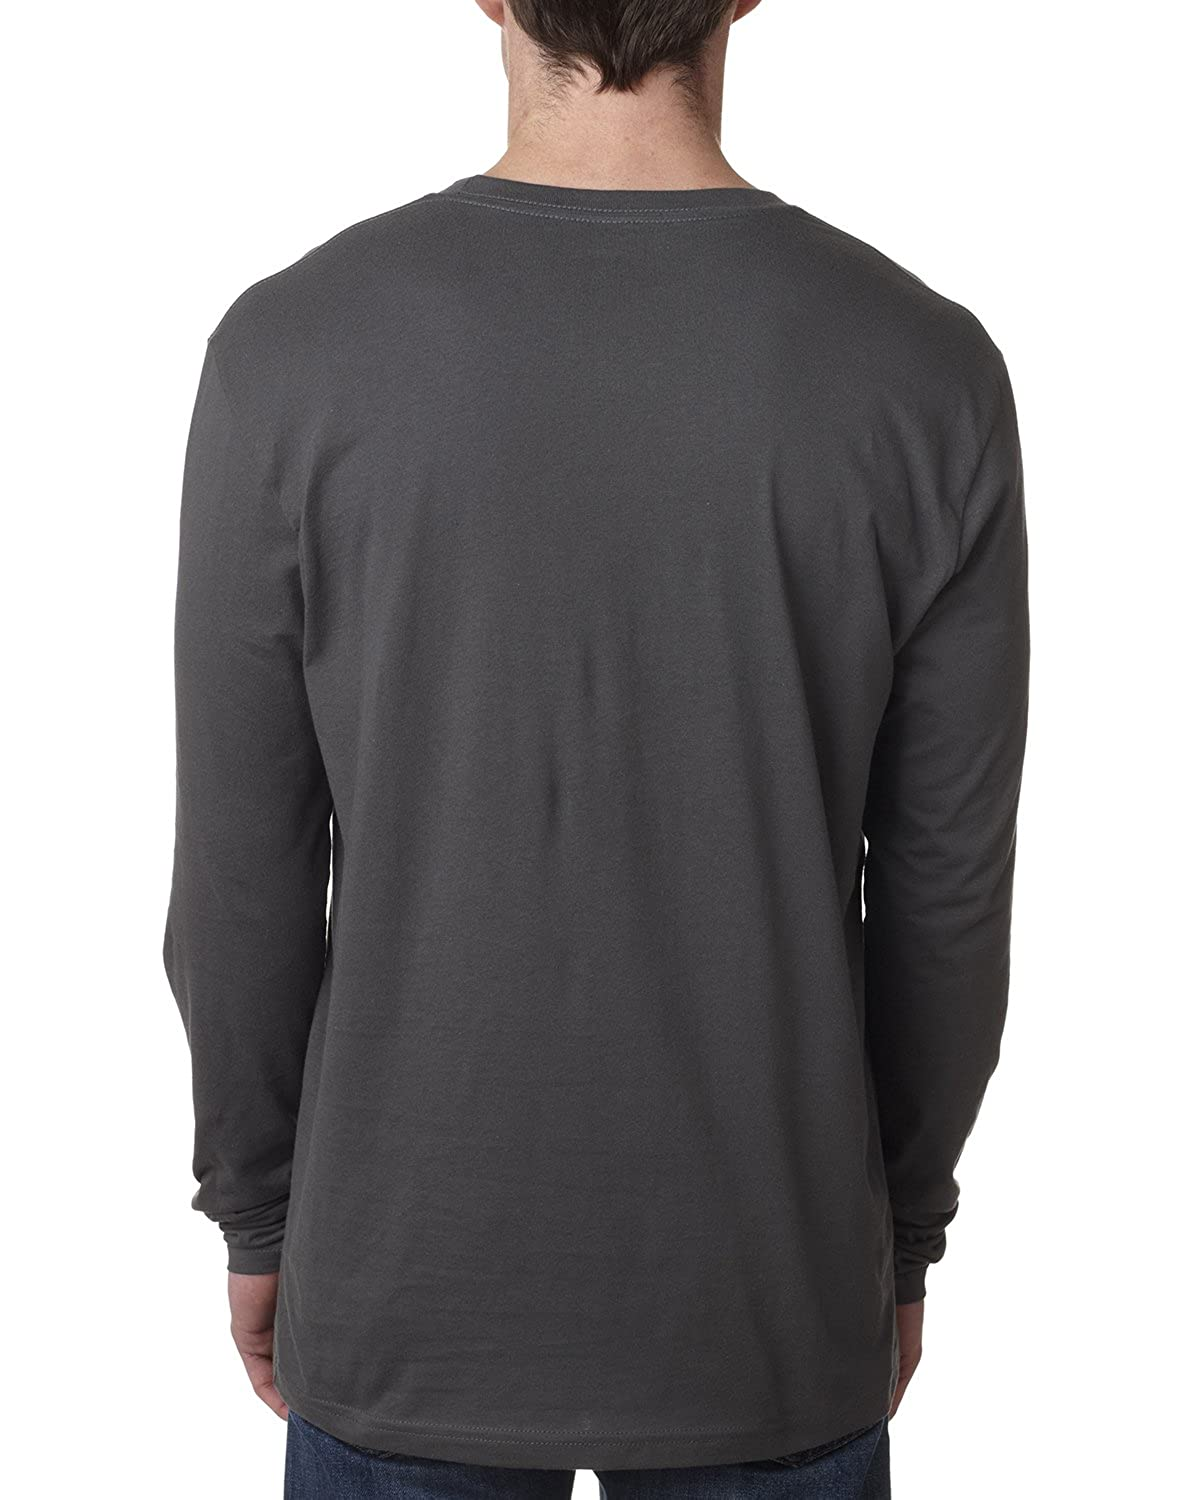 b0eaf02b36596d N8101 Next Level Men s Long-Sleeve Thermal at Amazon Men s Clothing store